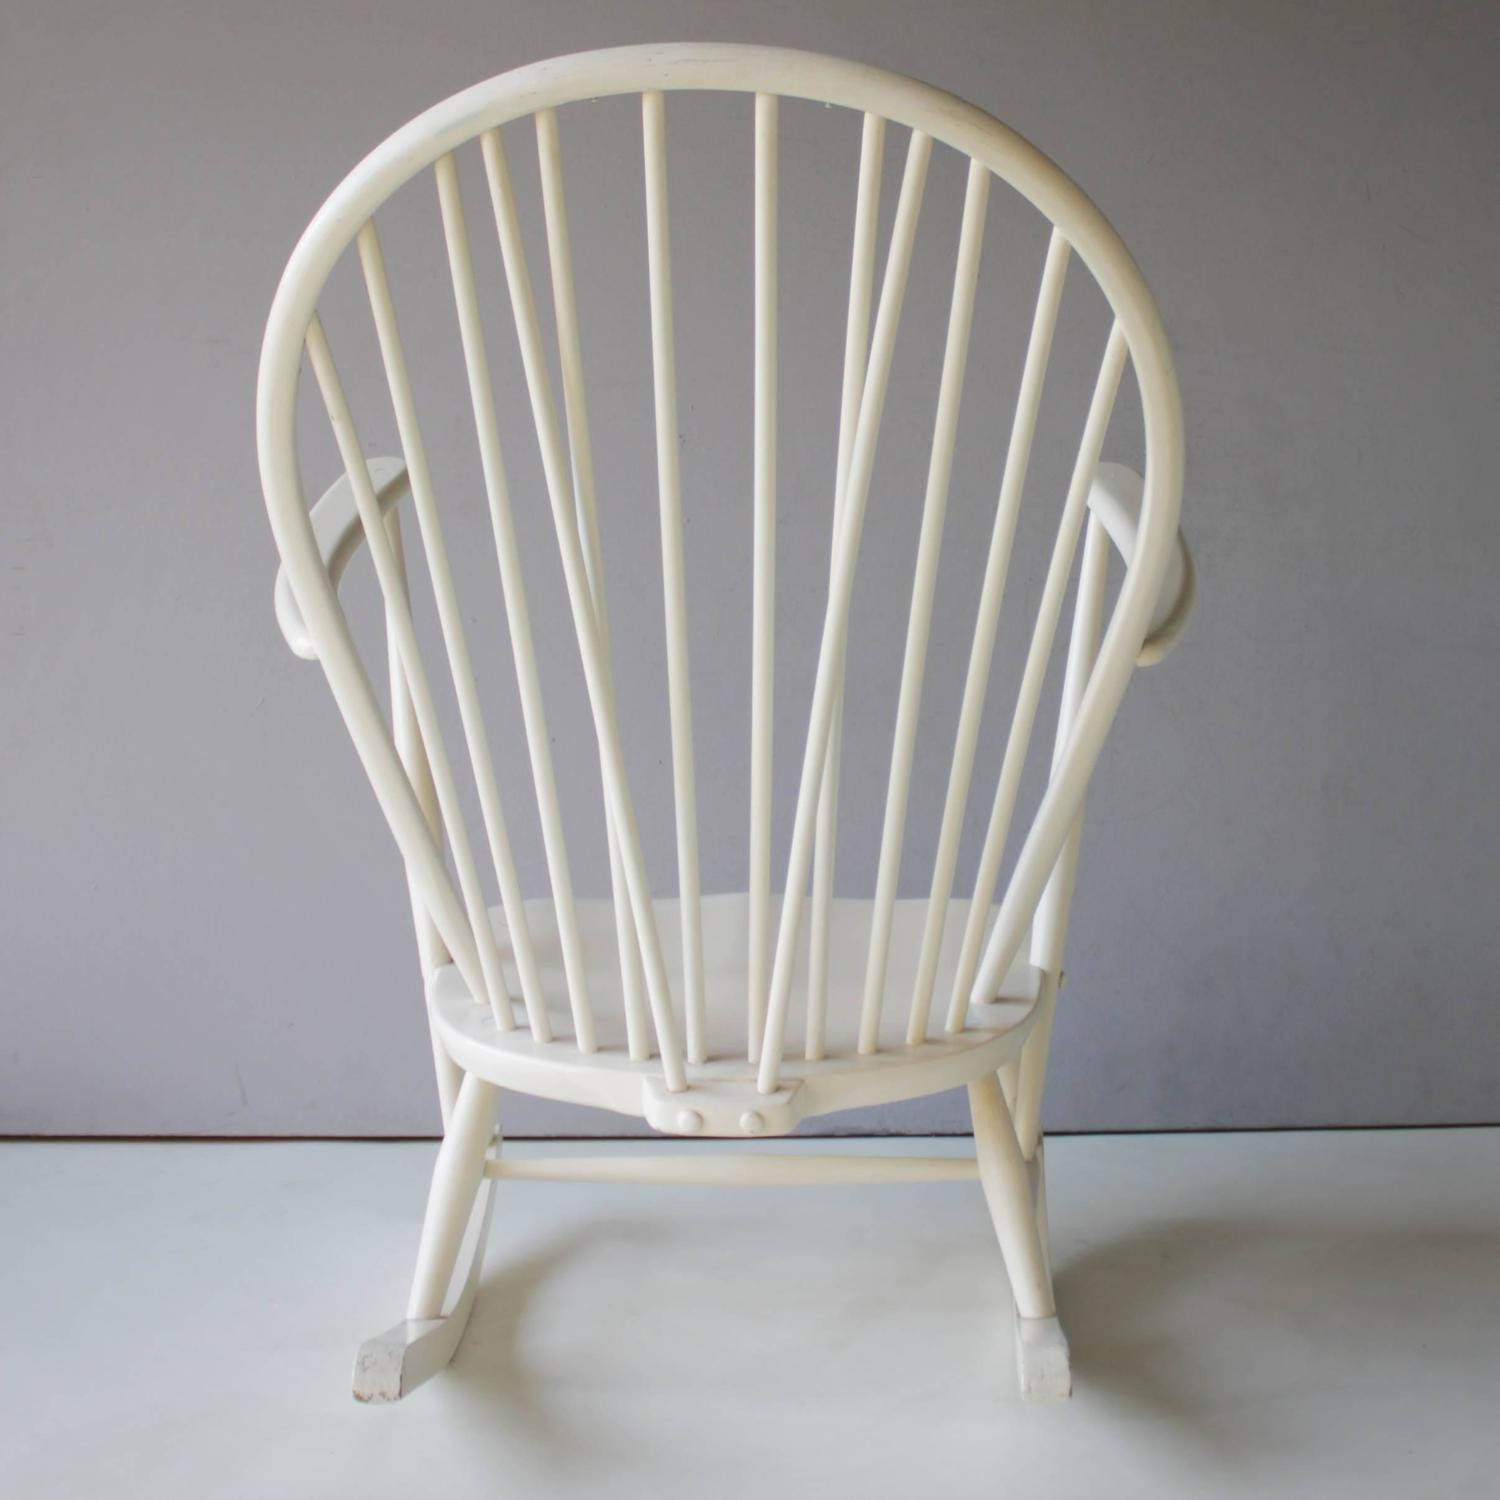 windsor rocking chair cushions office handles by lucian ercolani for ercol sale at 1stdibs